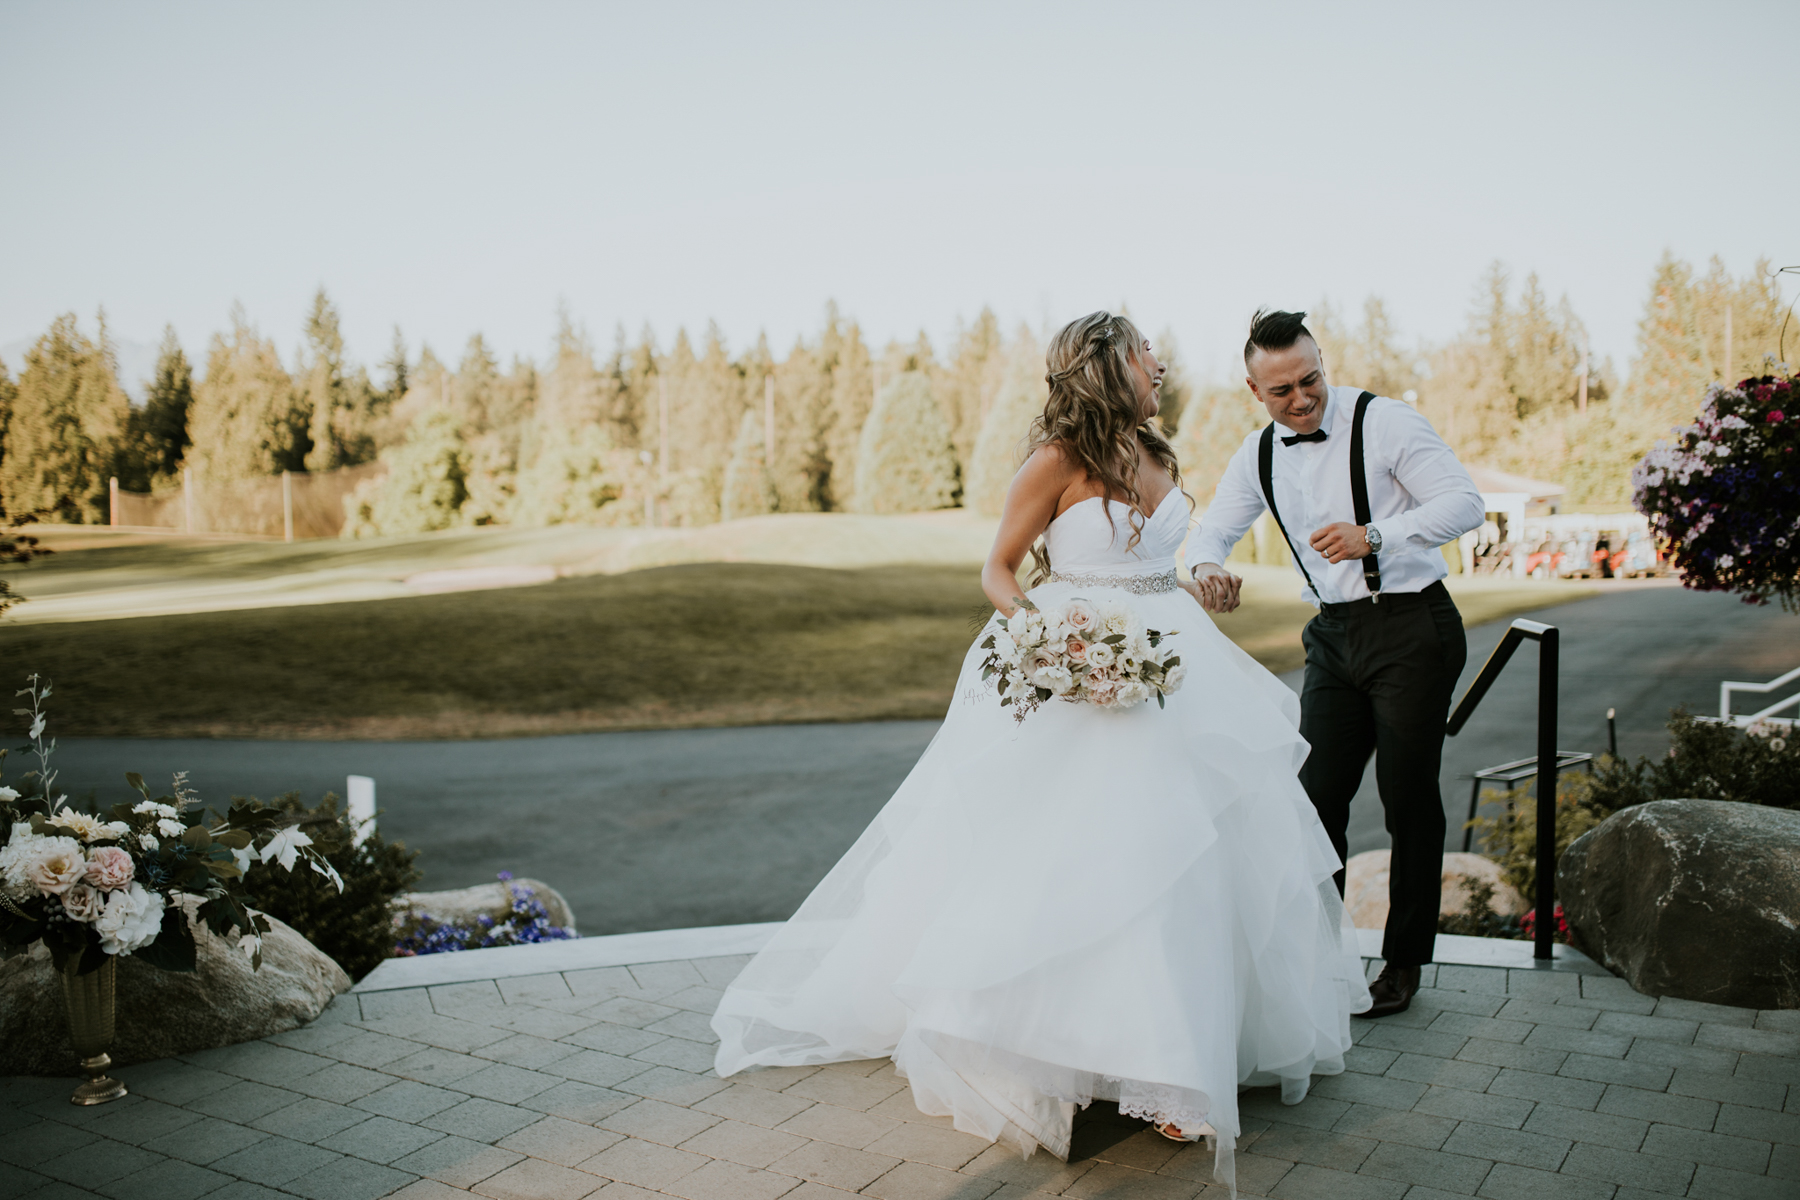 kelseyandrew_wedding_blush380.jpg